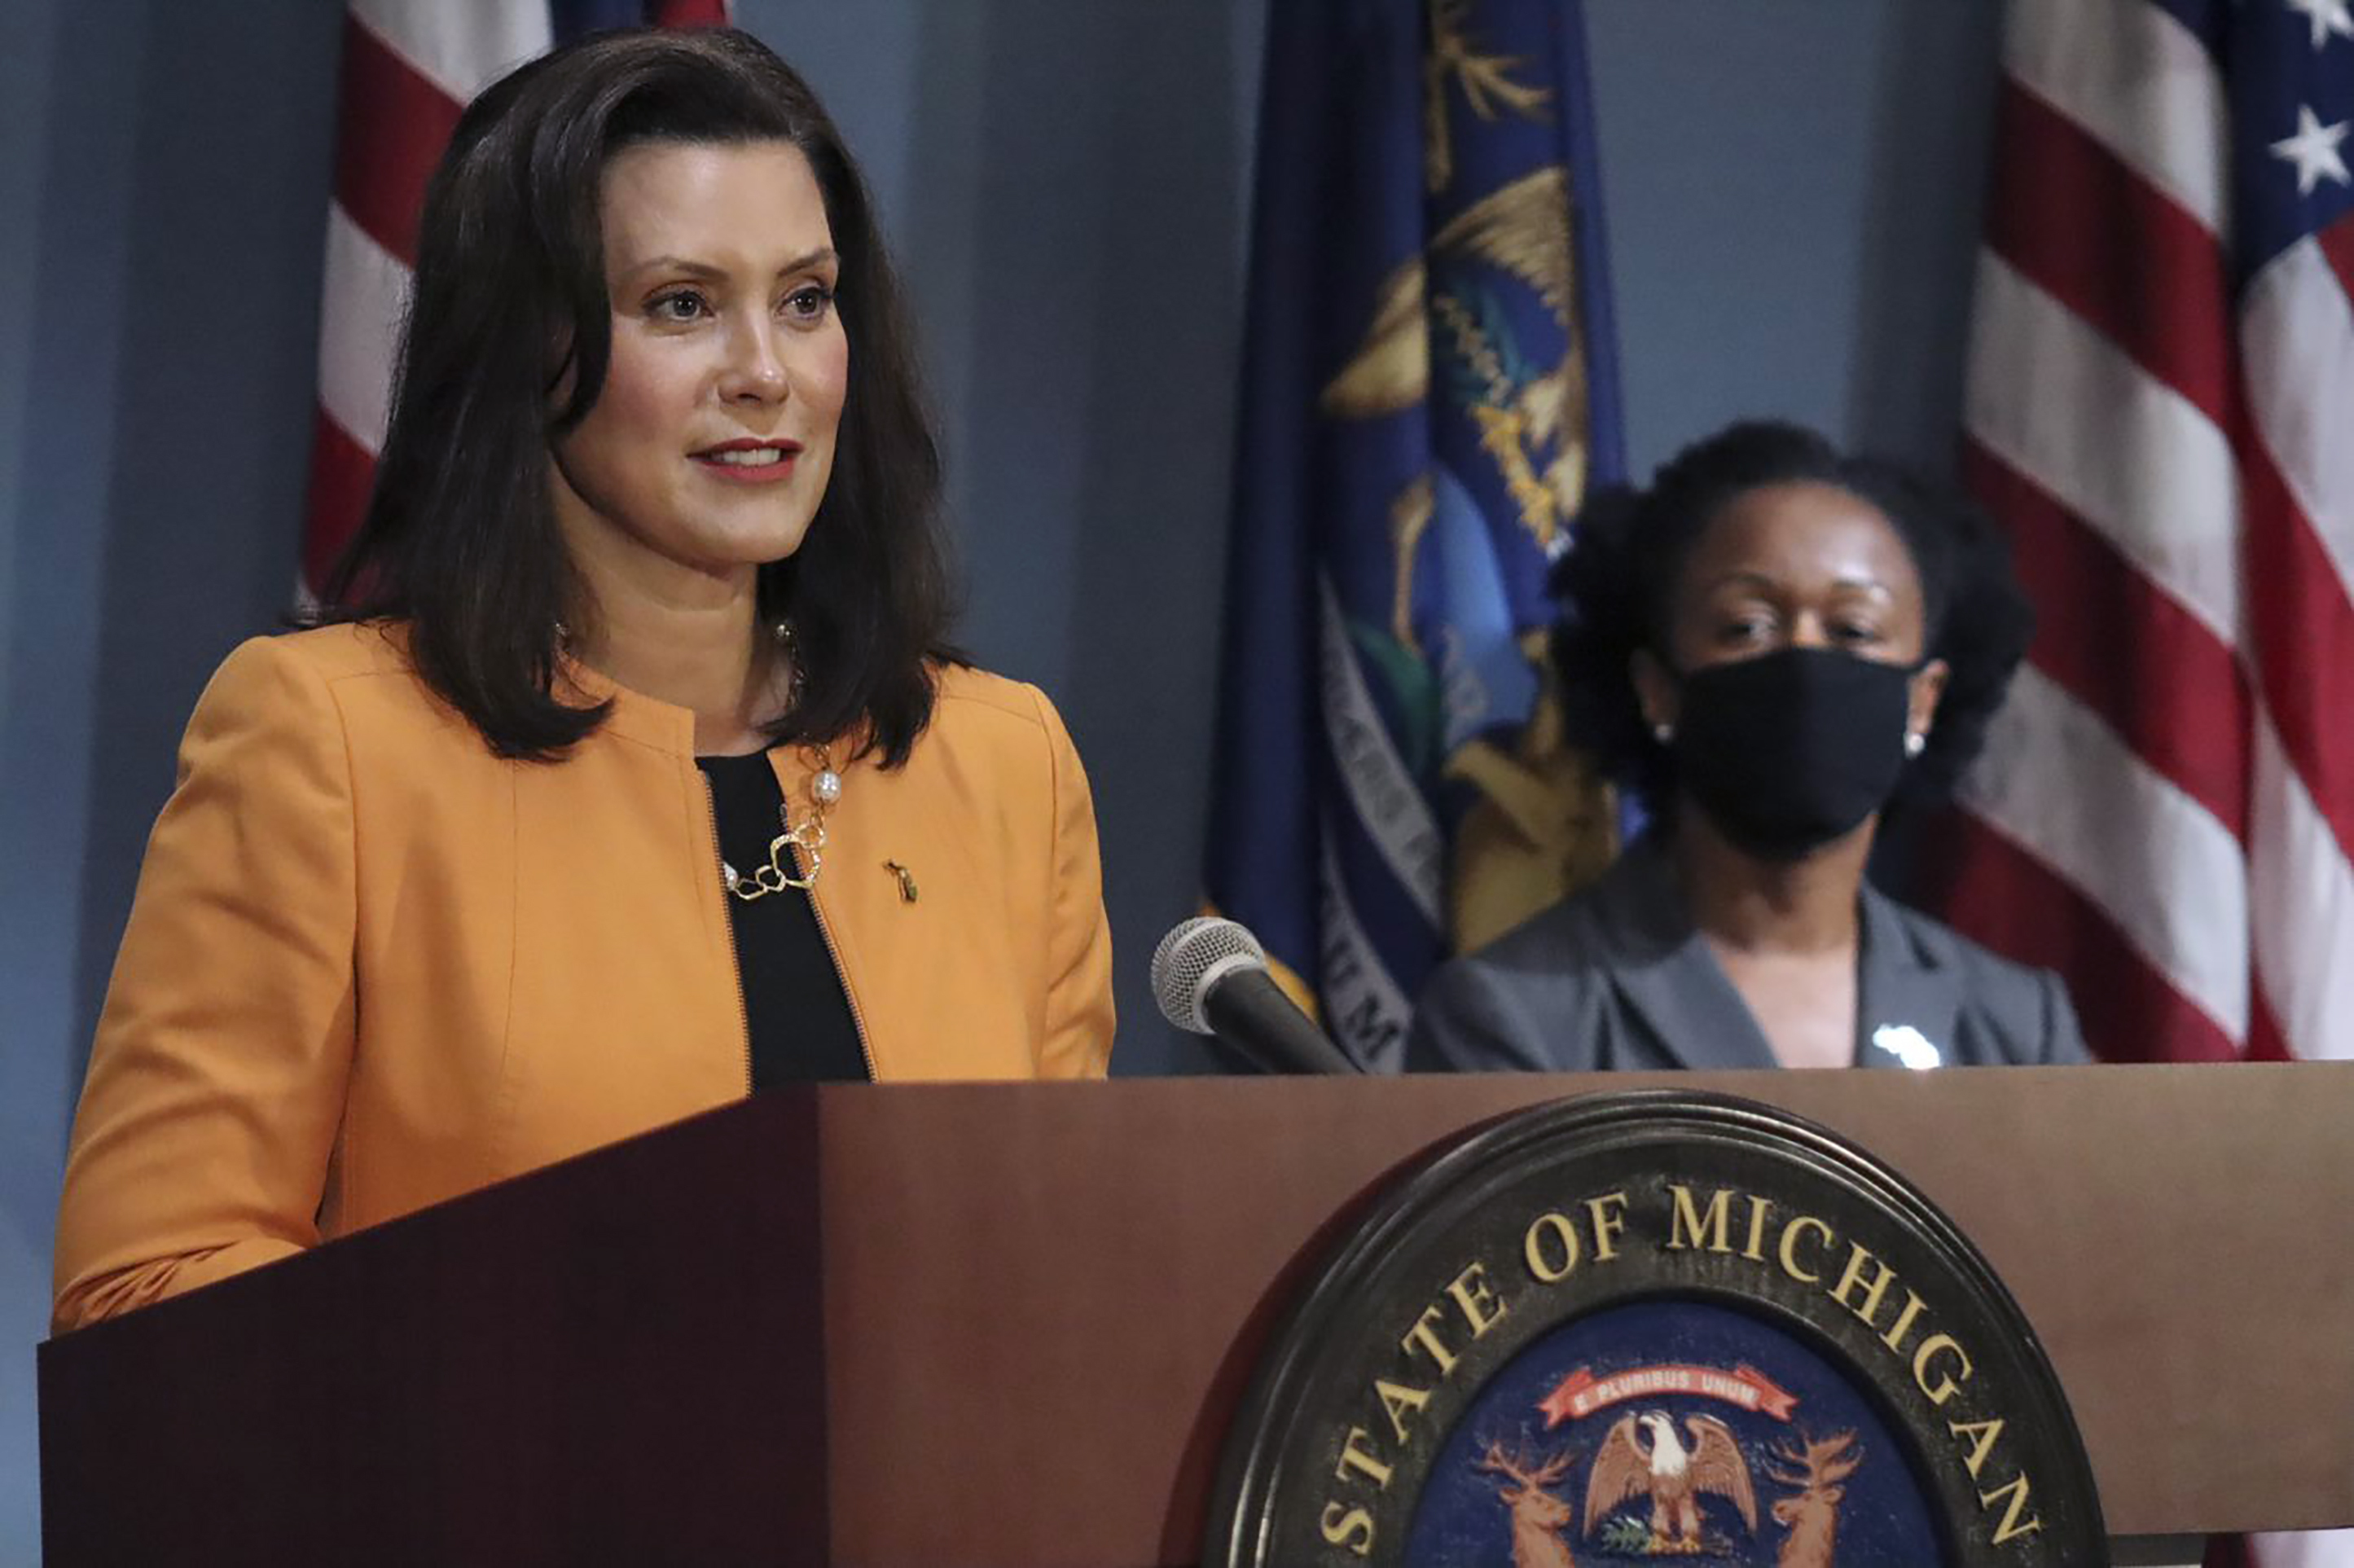 In a photo provided by the Michigan Office of the Governor, Michigan Gov. Gretchen Whitmer addresses the state during a speech in Lansing in August. (AP)